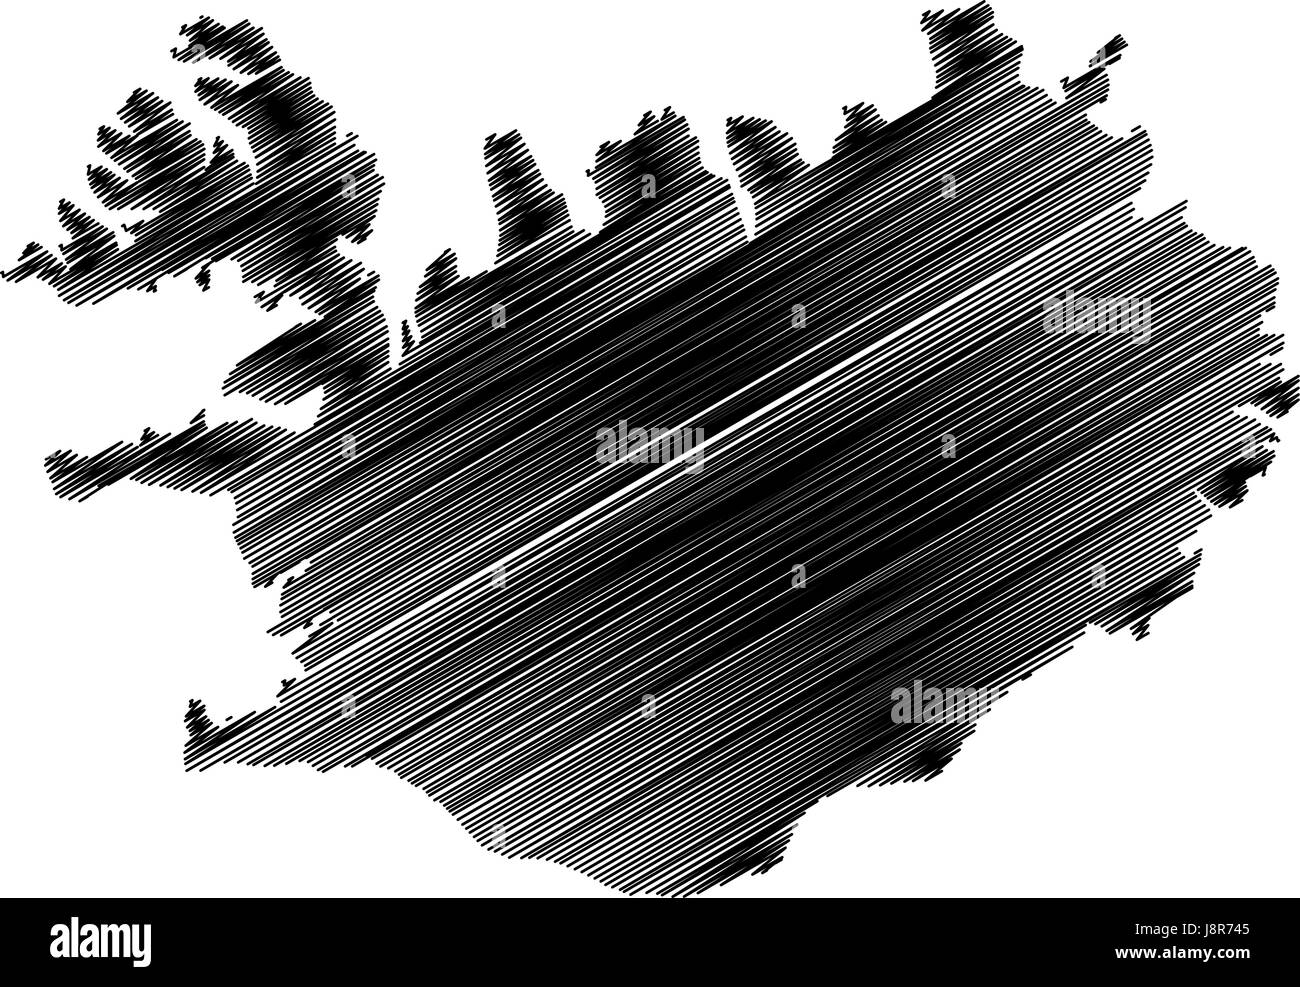 Iceland map vector illustration, scribble sketch Iceland Stock ...